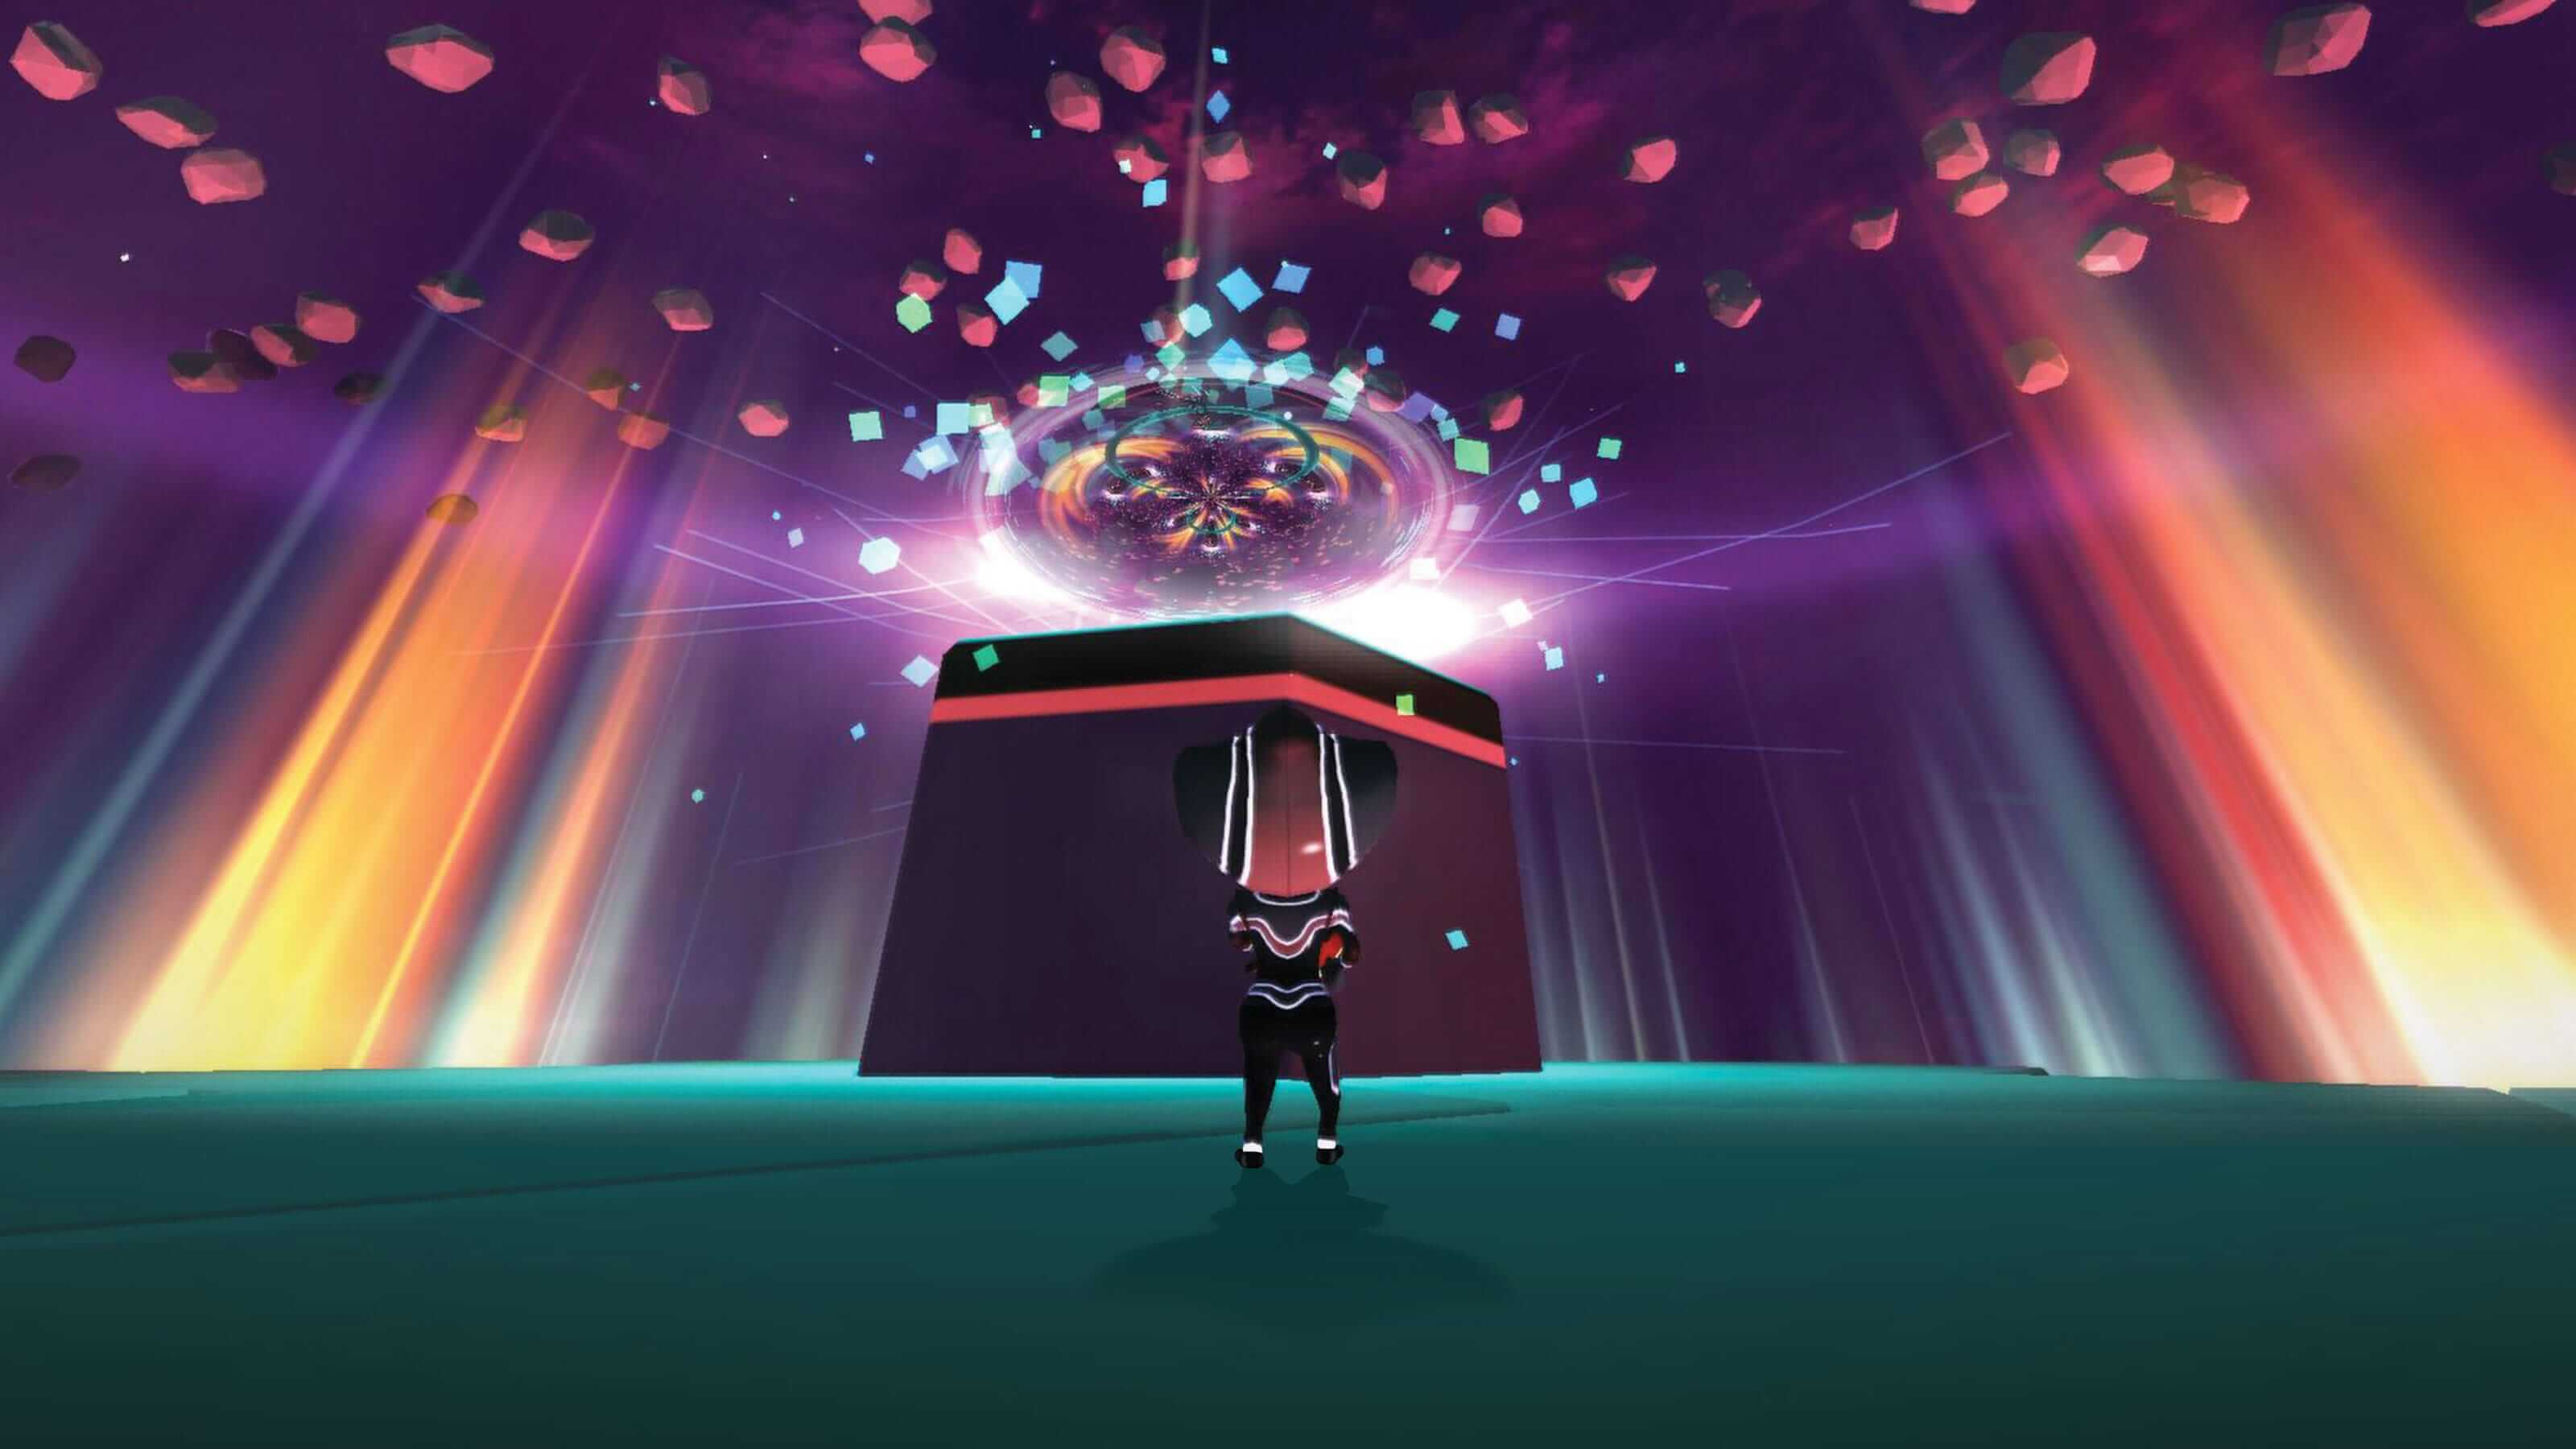 The player's character stares up at a raised platform as red, green, and blue blocks, rays, and particles swirl above